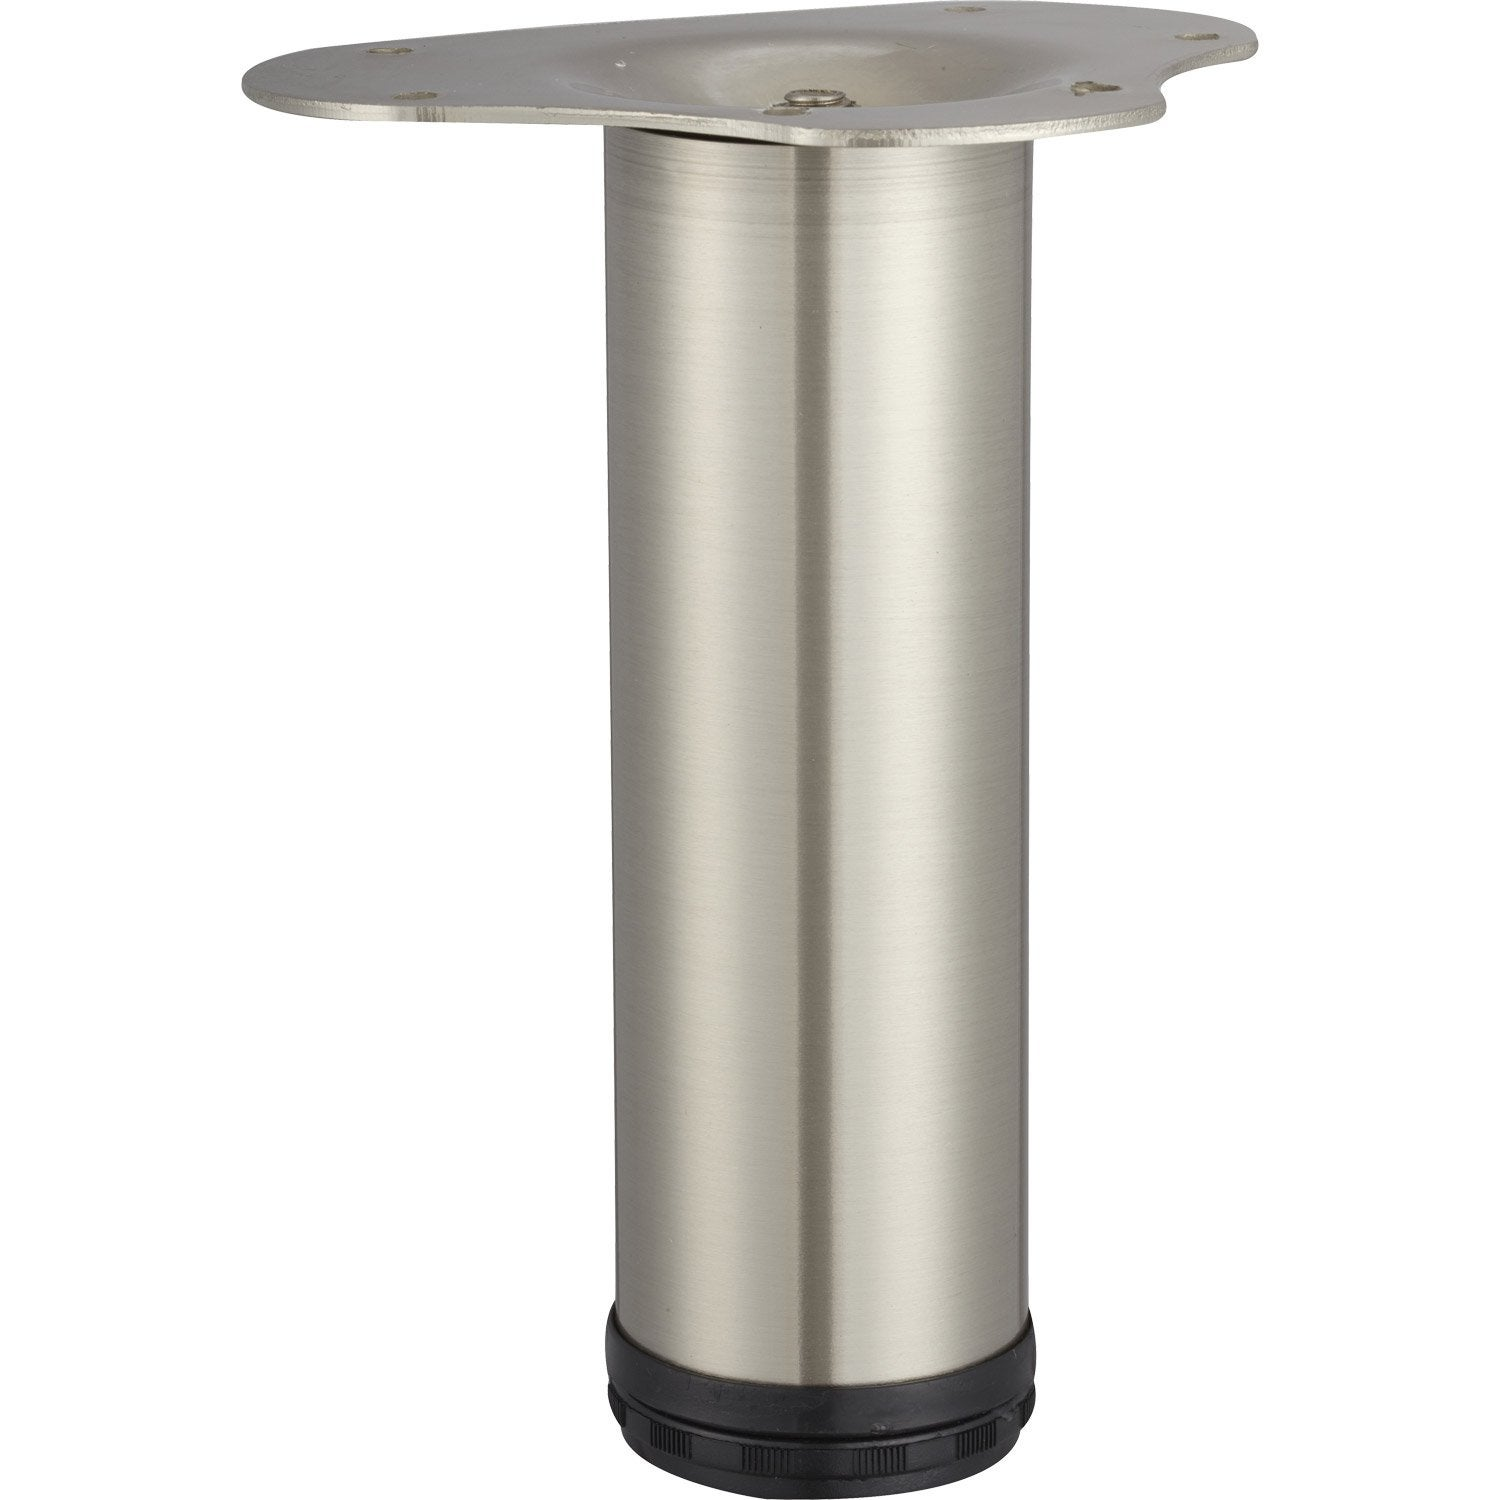 Pied de table basse cylindrique r glable acier bross gris for Table pied central ikea